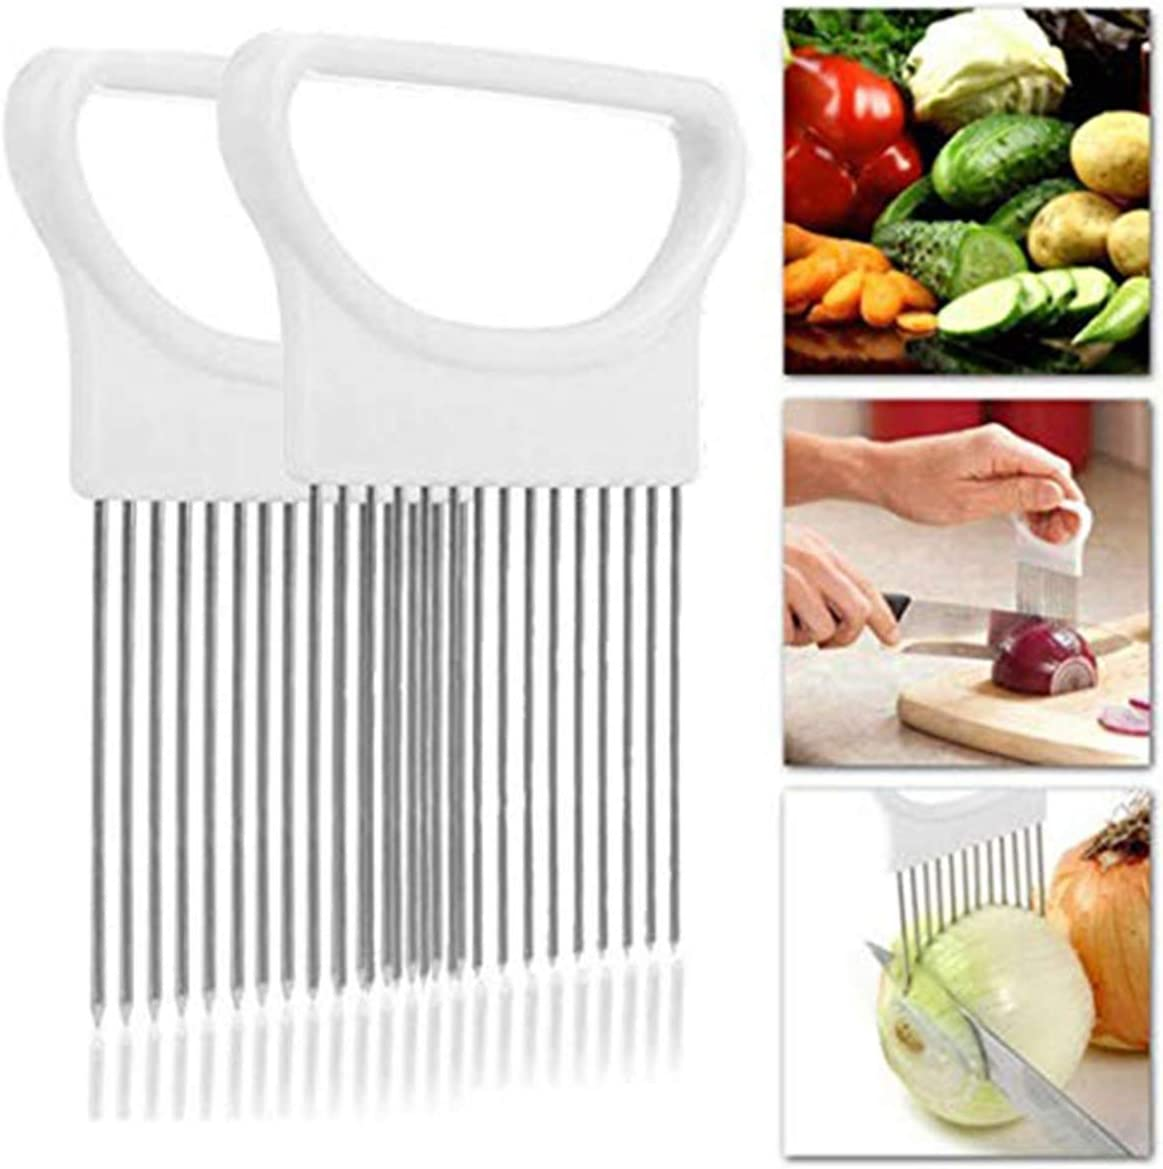 Onion Holder Slicer Cutter Chopper - Tomato Vegetable Lemon Potato Cutter Slicer Odor Remover (White+White)